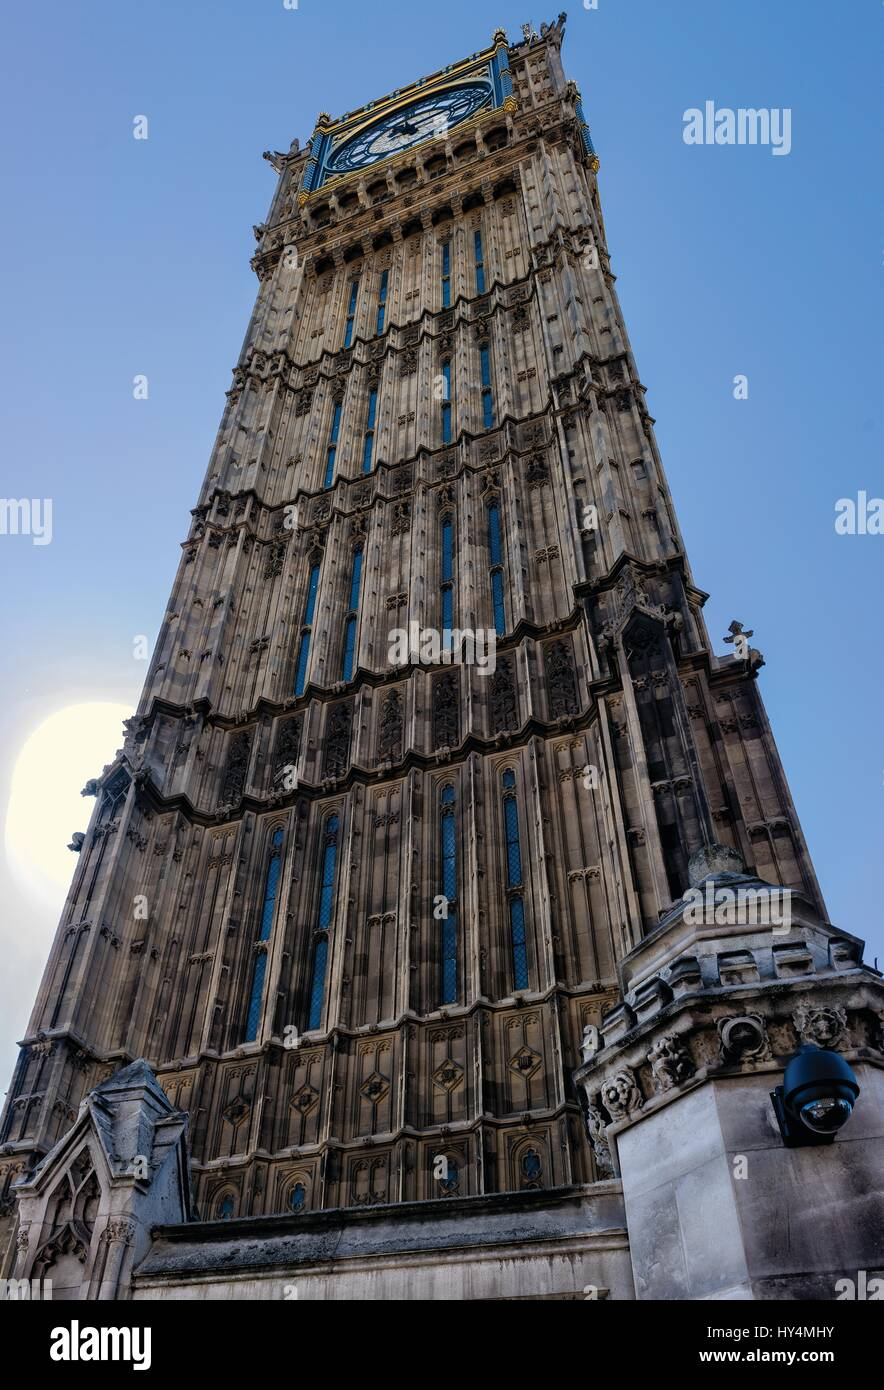 Unusual angle of the Big Ben clock tower - Stock Image